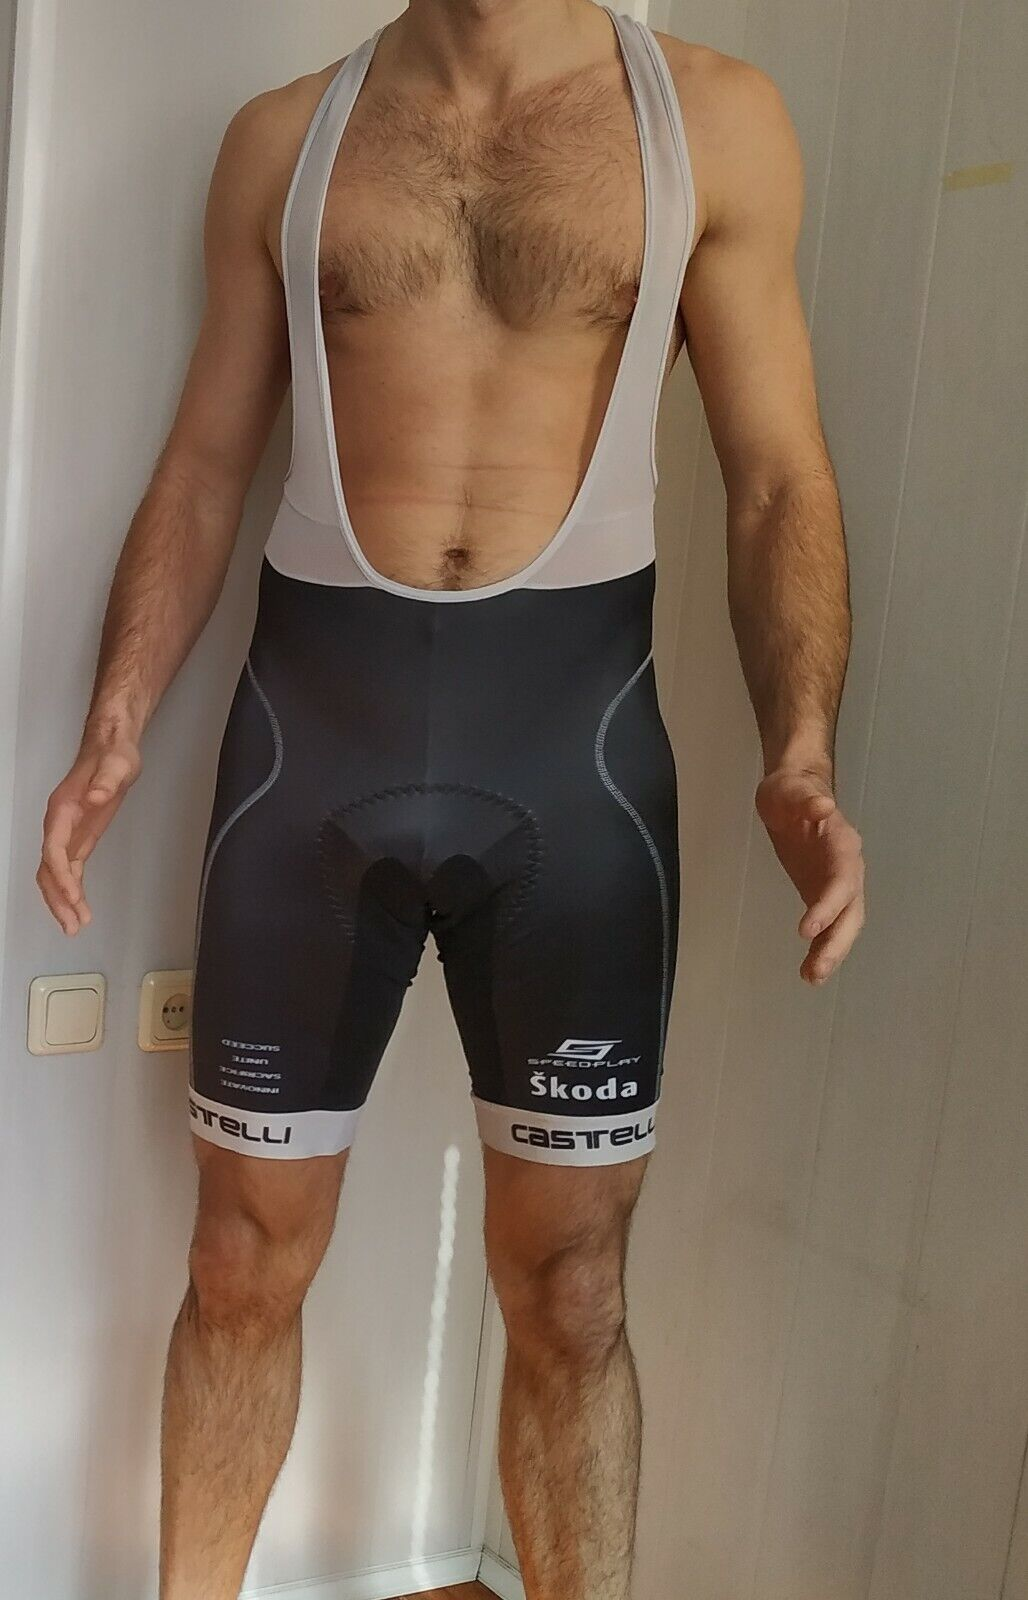 Castelli Bib Shorts ,Mens , Size - XXL , Good Condition